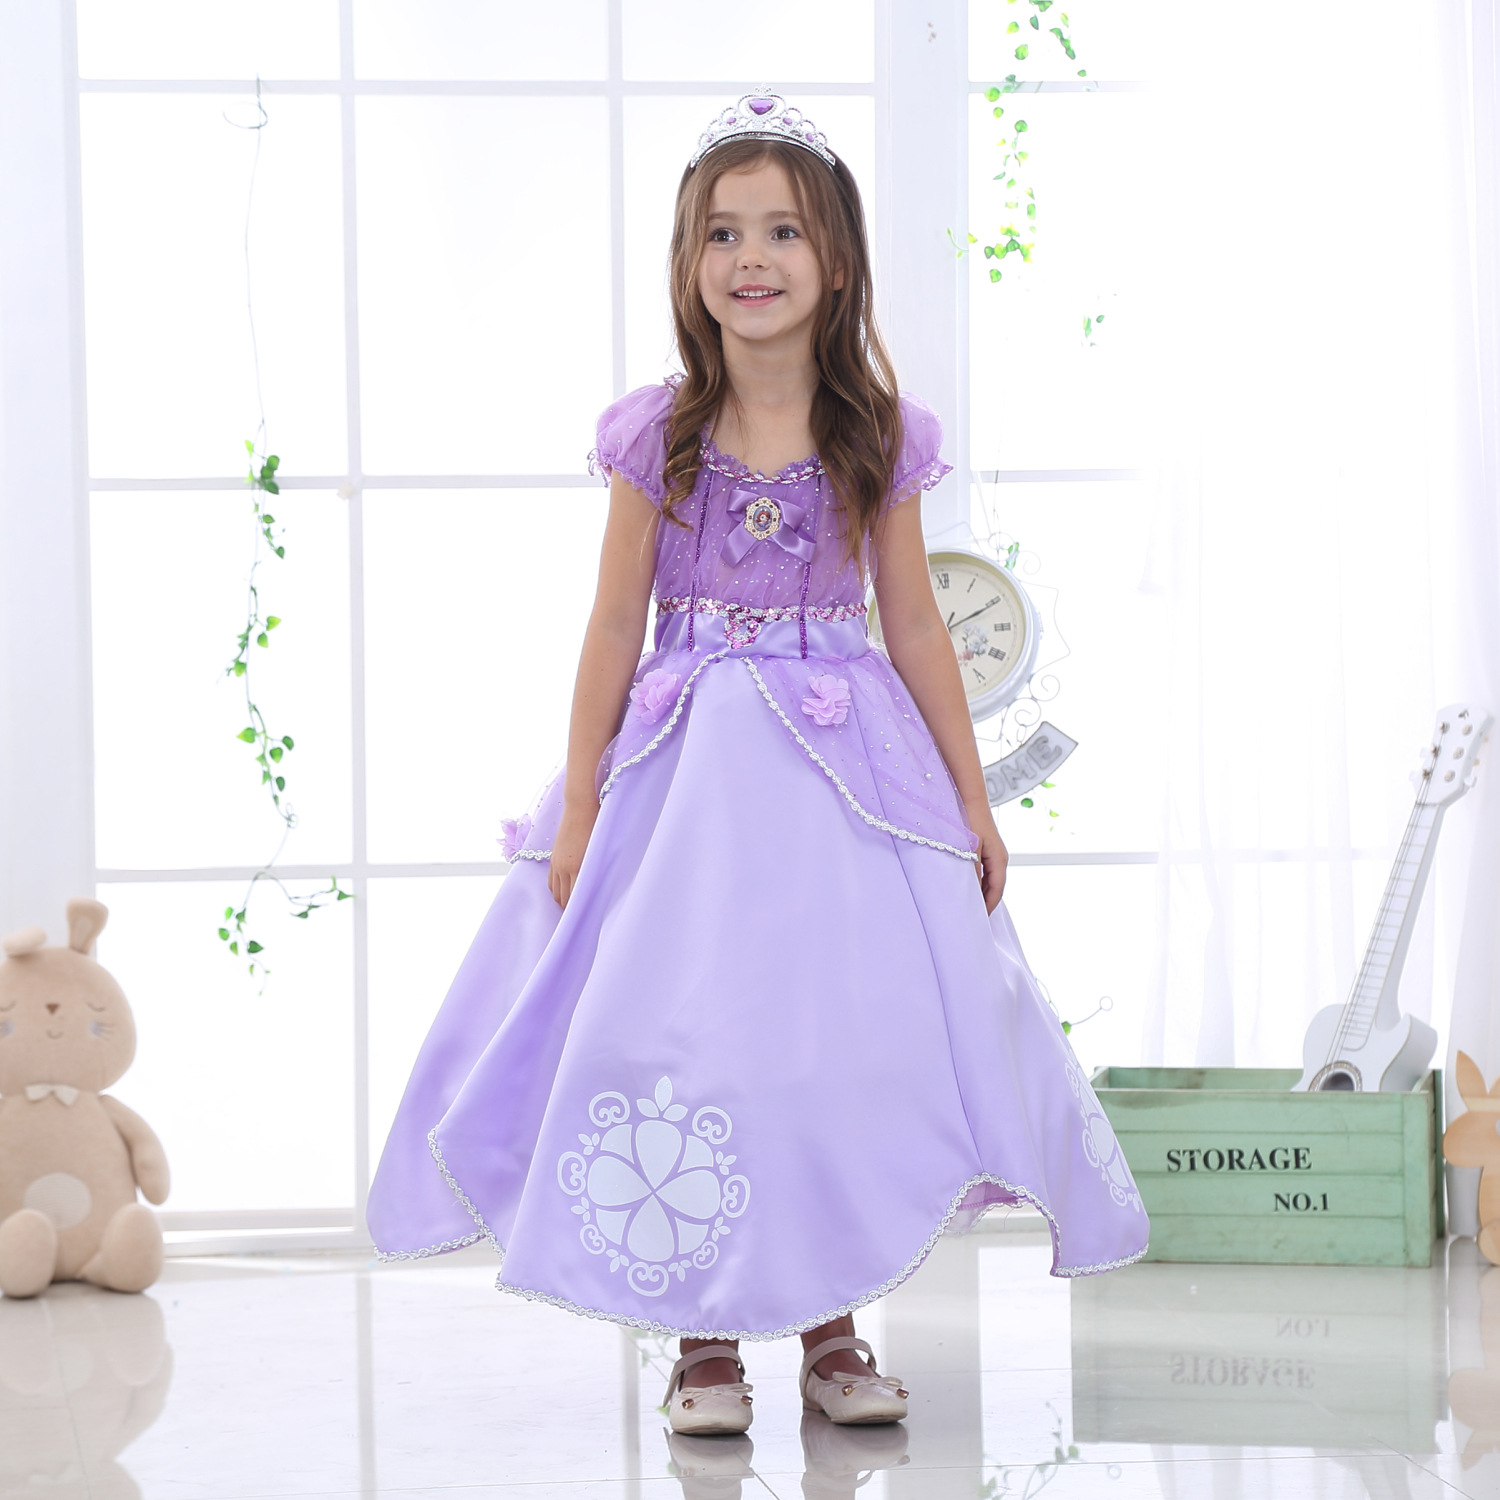 Sofia Cosplay Princess Summer Dresses Girls  Costume 5 Layers Children Kids Halloween Birthday Party Dress